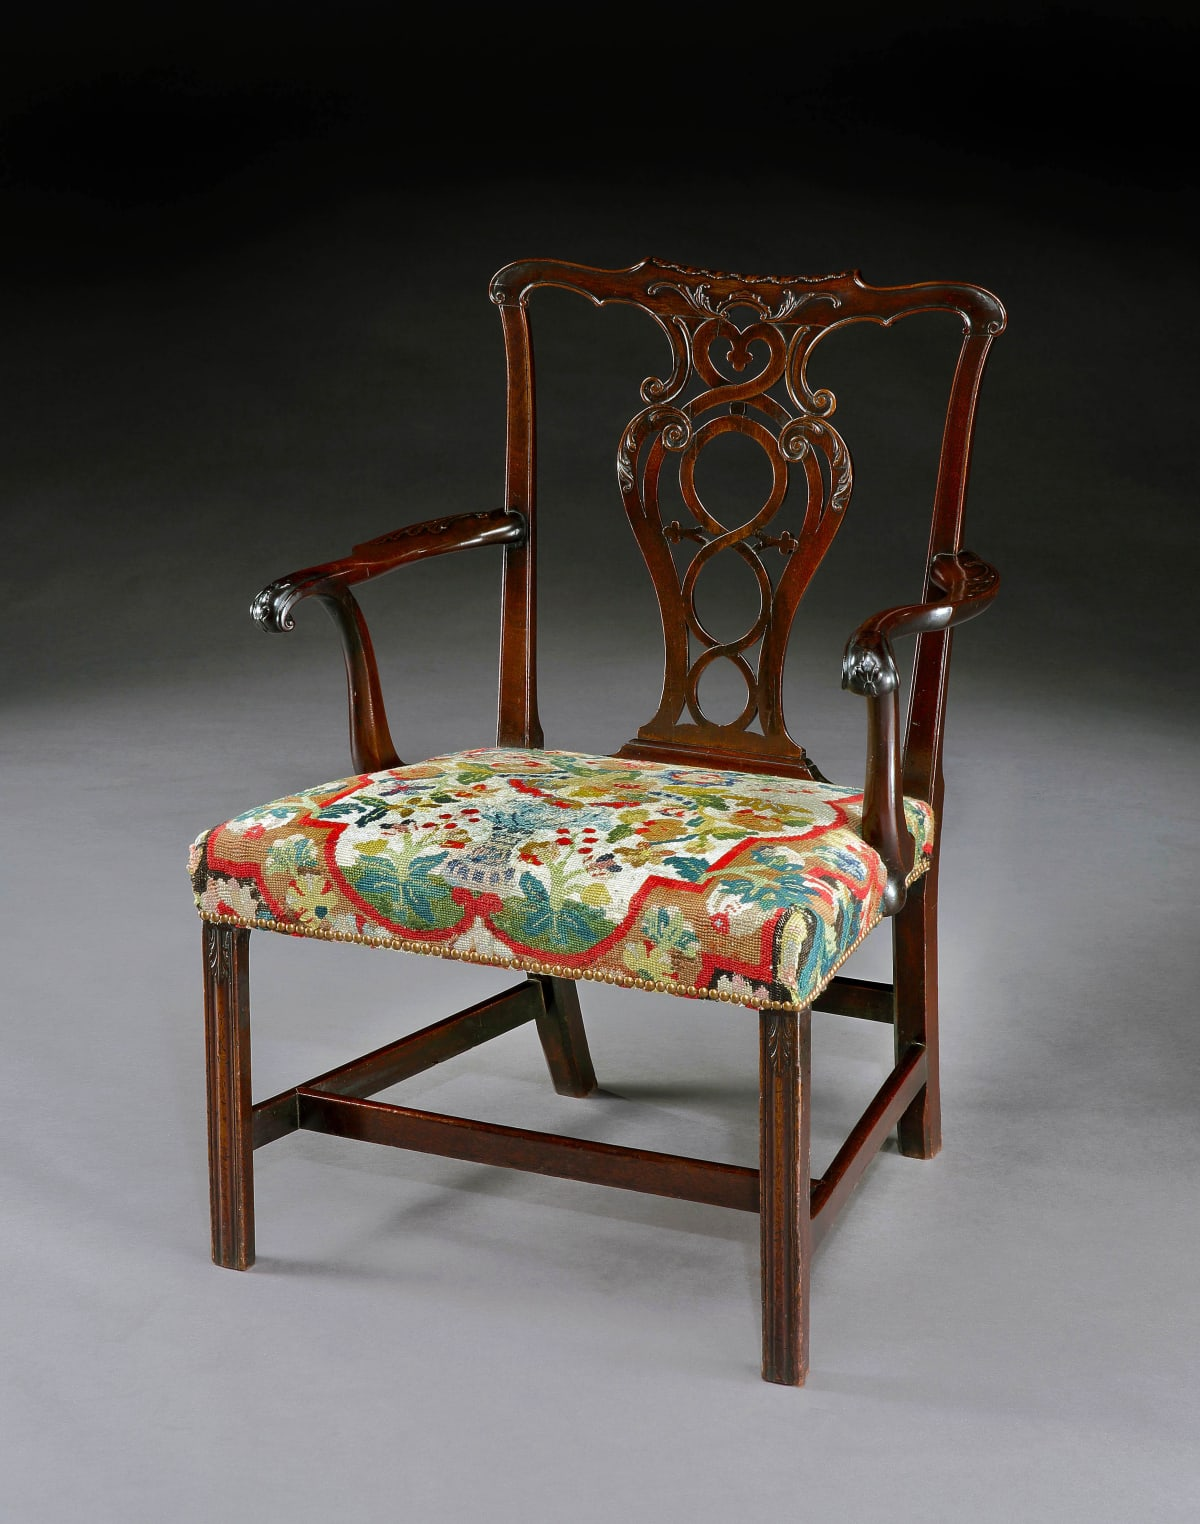 A GEORGE III CARVED MAHOGANY CHAIR, ENGLISH, CIRCA 1765